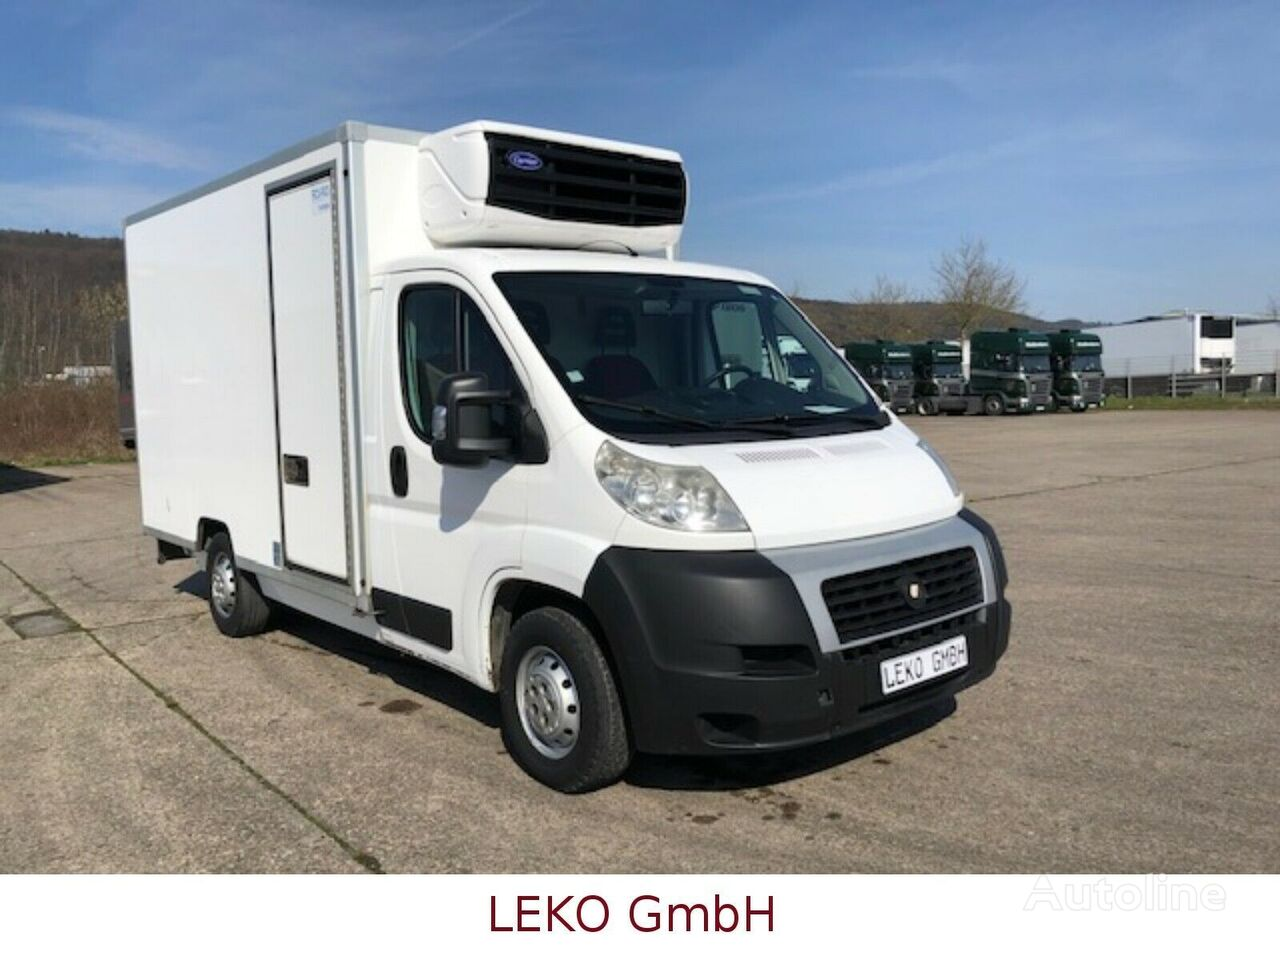 FIAT Ducato refrigerated truck